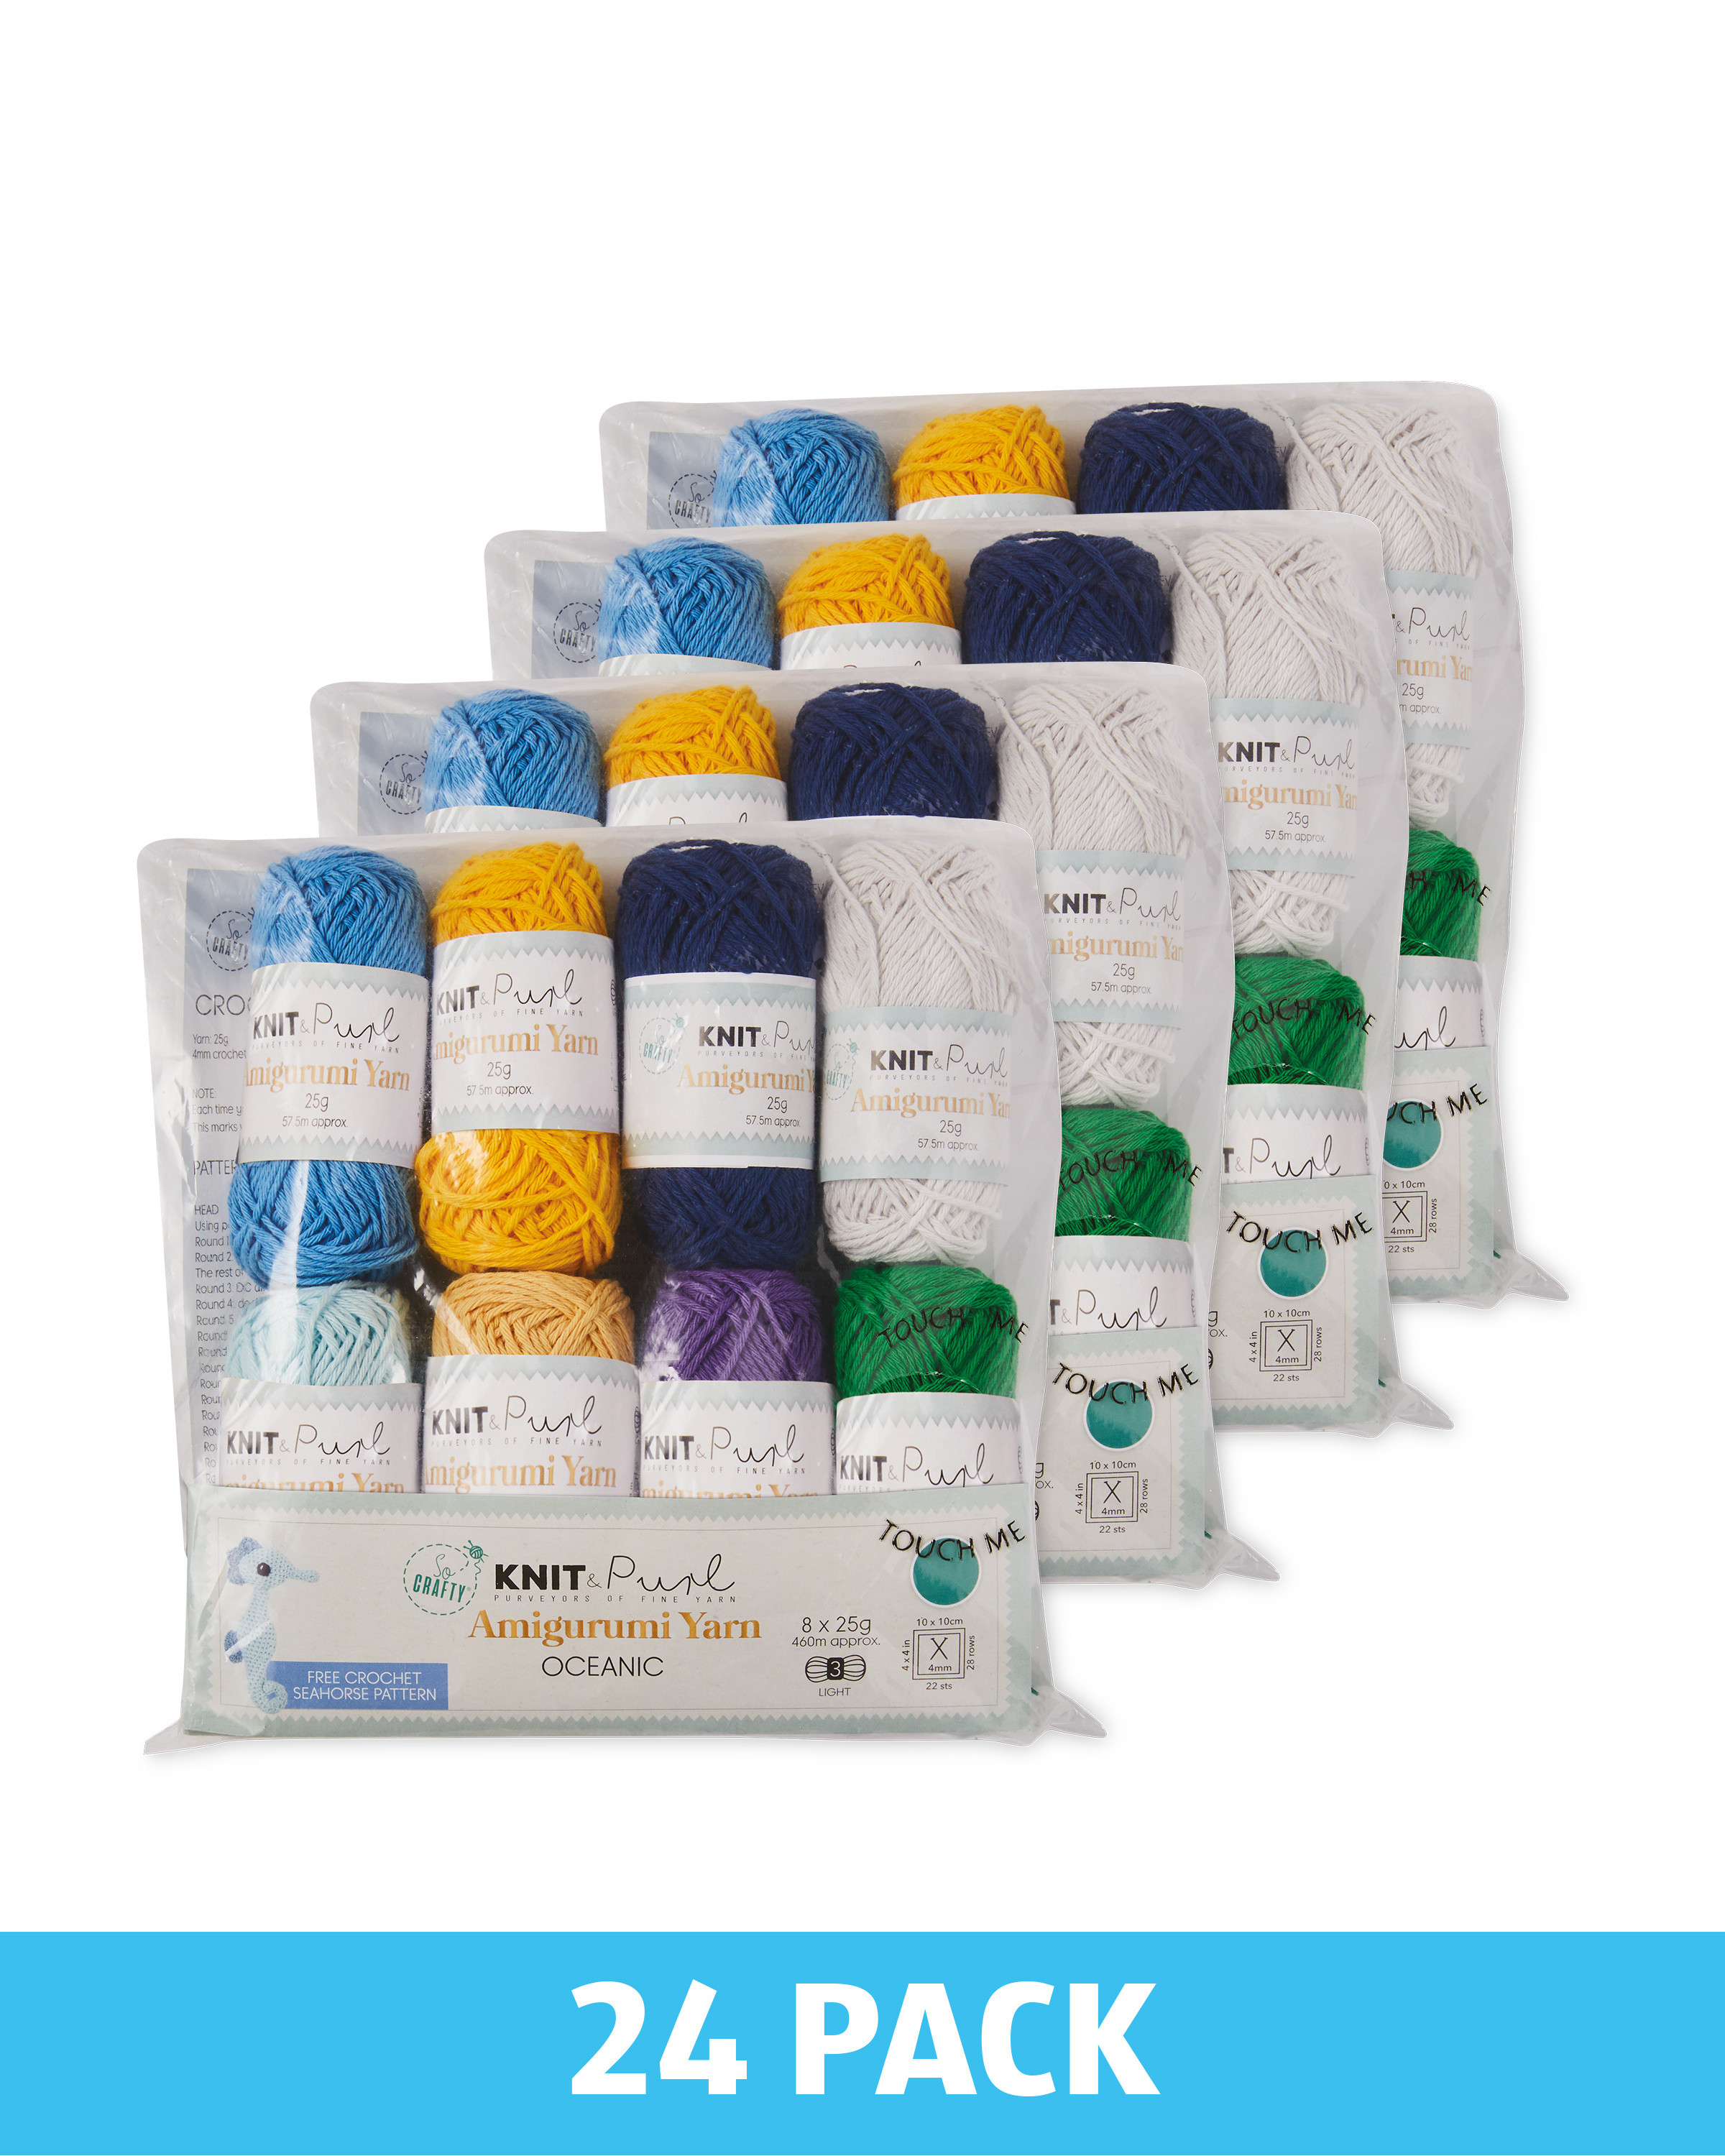 Thread 1 Pack (5 Balls) Alize Cotton Gold Hobby Colour: candle ... | 3000x2400